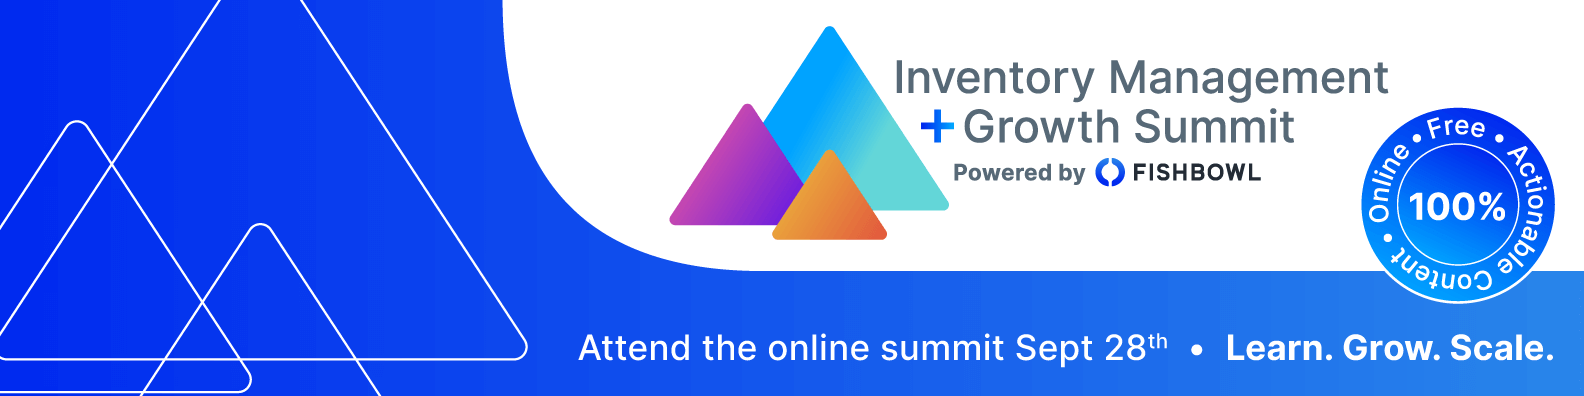 Register for Fishbowl's Inventory Management + Growth Summit.